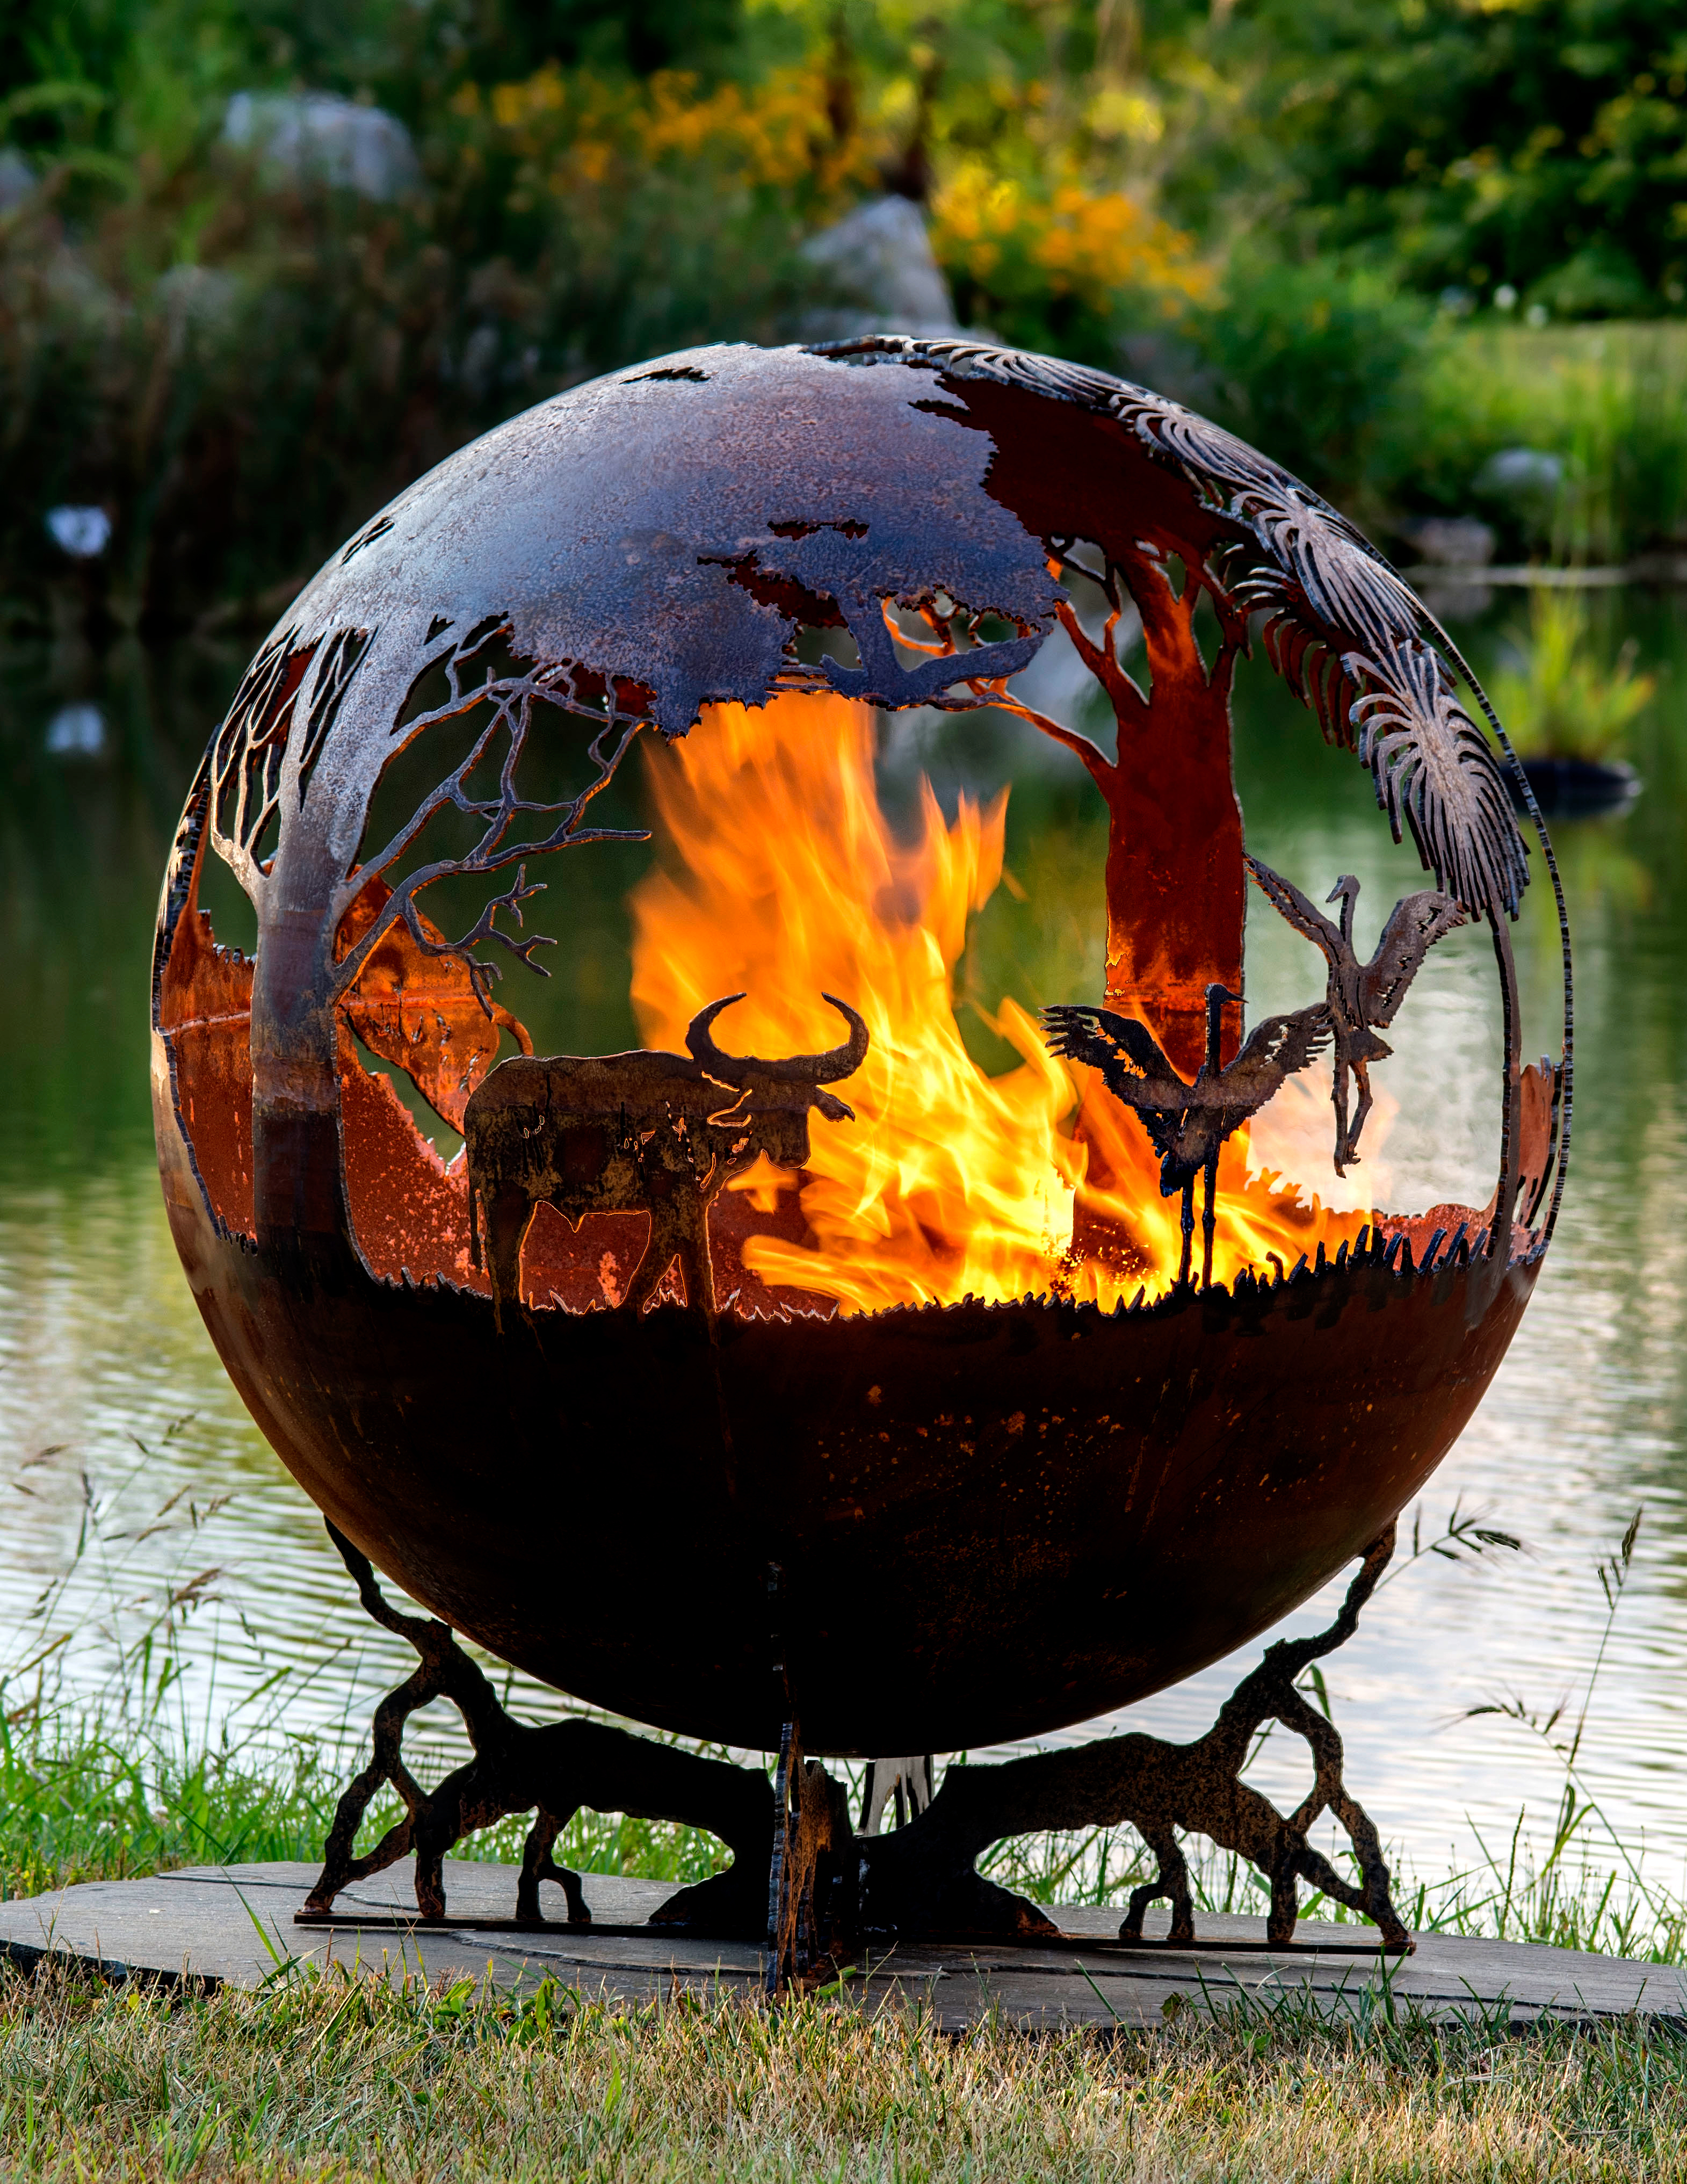 Outback Australia Fire Pit Sphere The Fire Pit Gallery within size 3141 X 4066